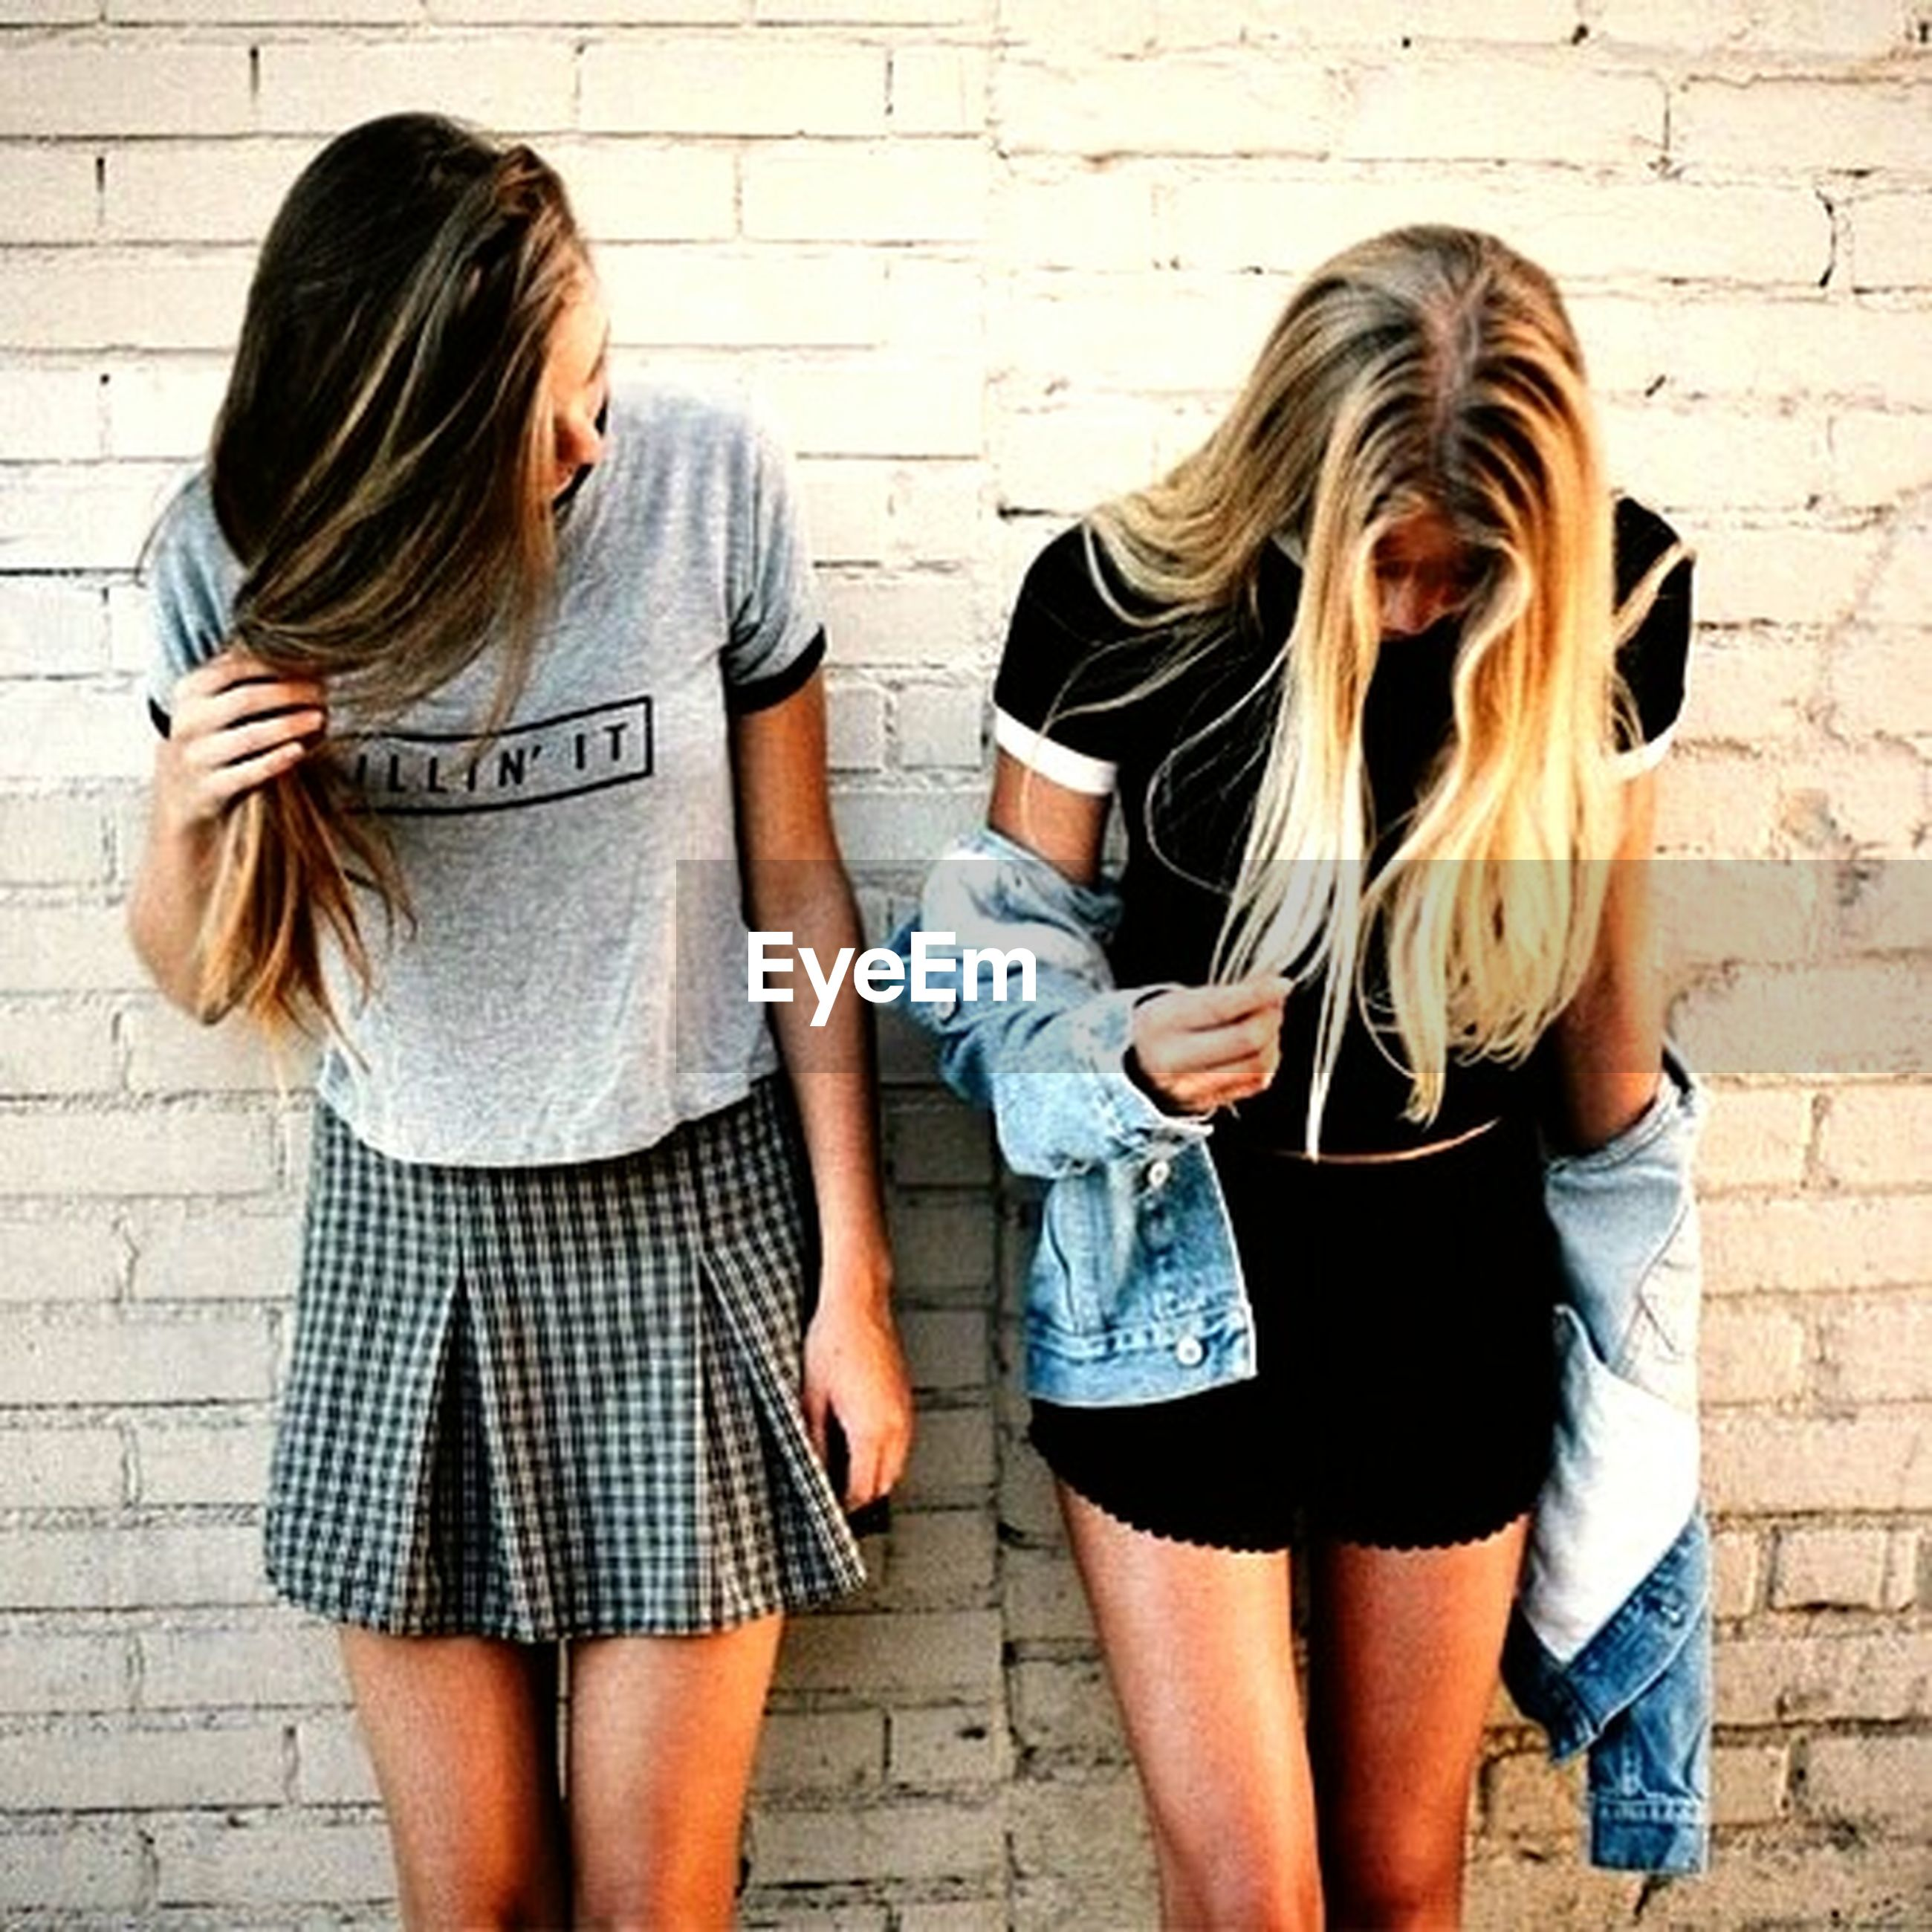 lifestyles, casual clothing, standing, person, togetherness, leisure activity, bonding, love, young women, young adult, friendship, three quarter length, long hair, front view, wall - building feature, smiling, happiness